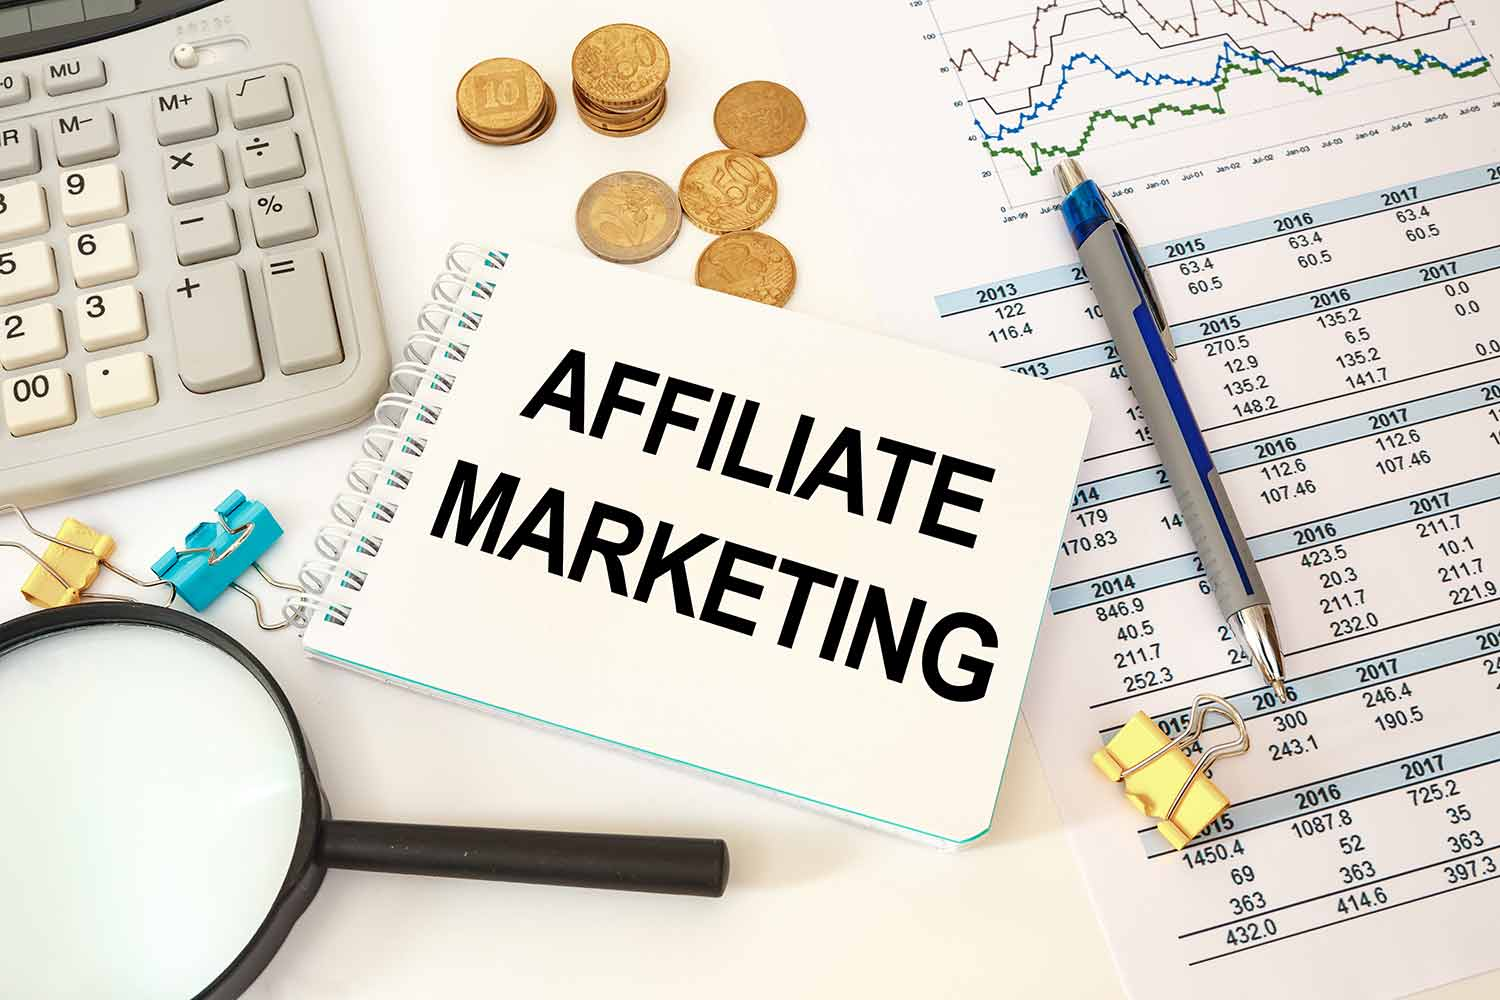 What to Expect From Affiliate Marketing